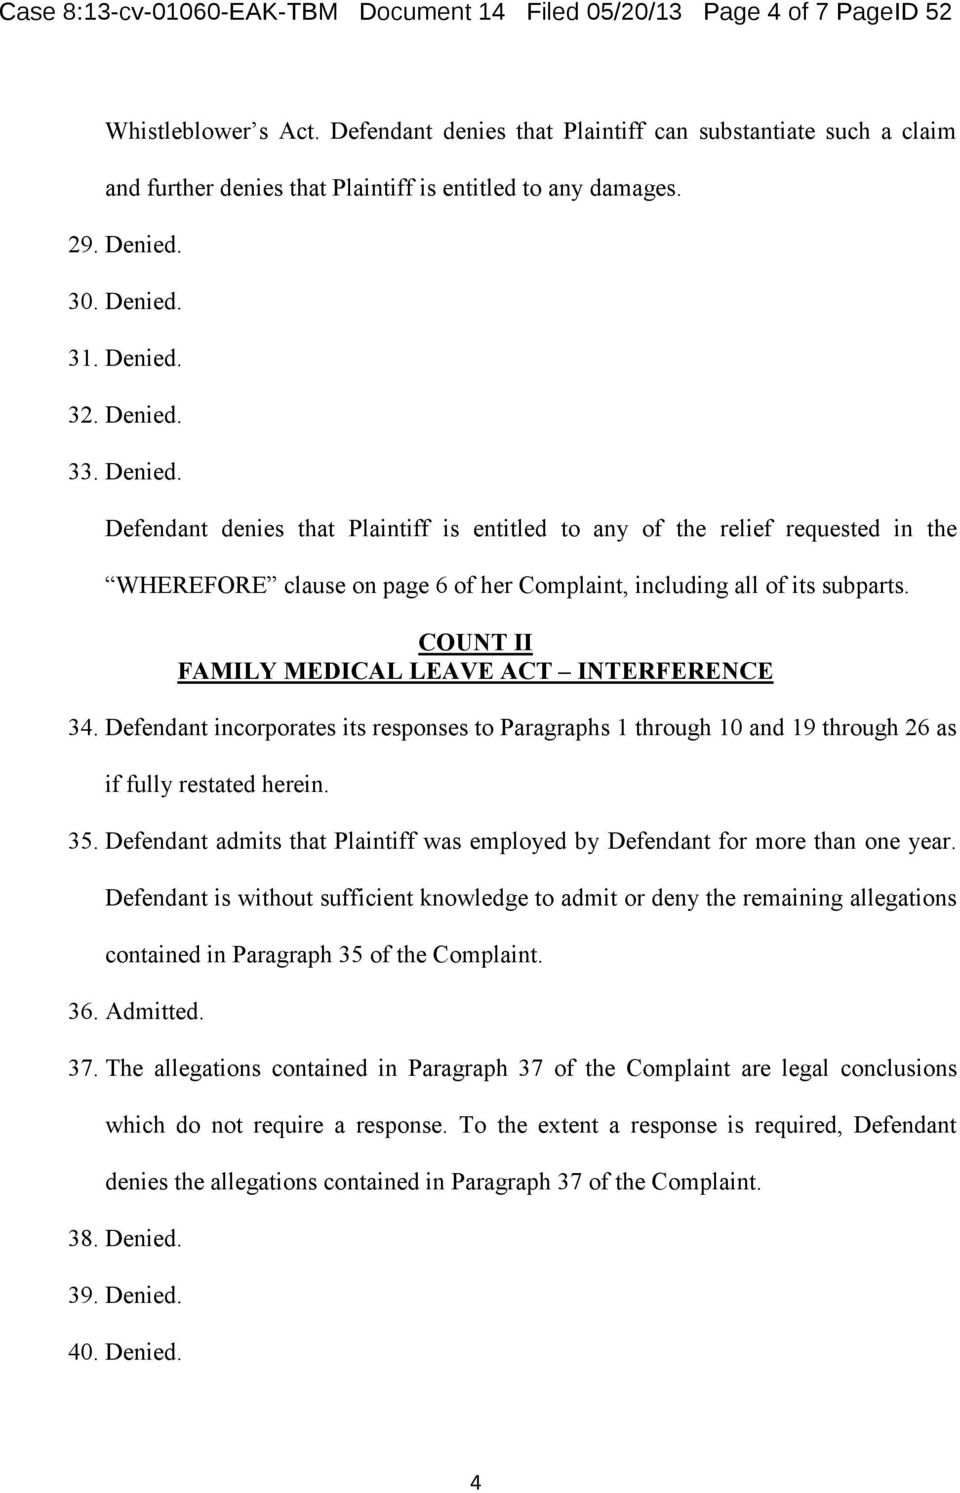 30. Denied. 31. Denied. 32. Denied. 33. Denied. Defendant denies that Plaintiff is entitled to any of the relief requested in the WHEREFORE clause on page 6 of her Complaint, including all of its subparts.